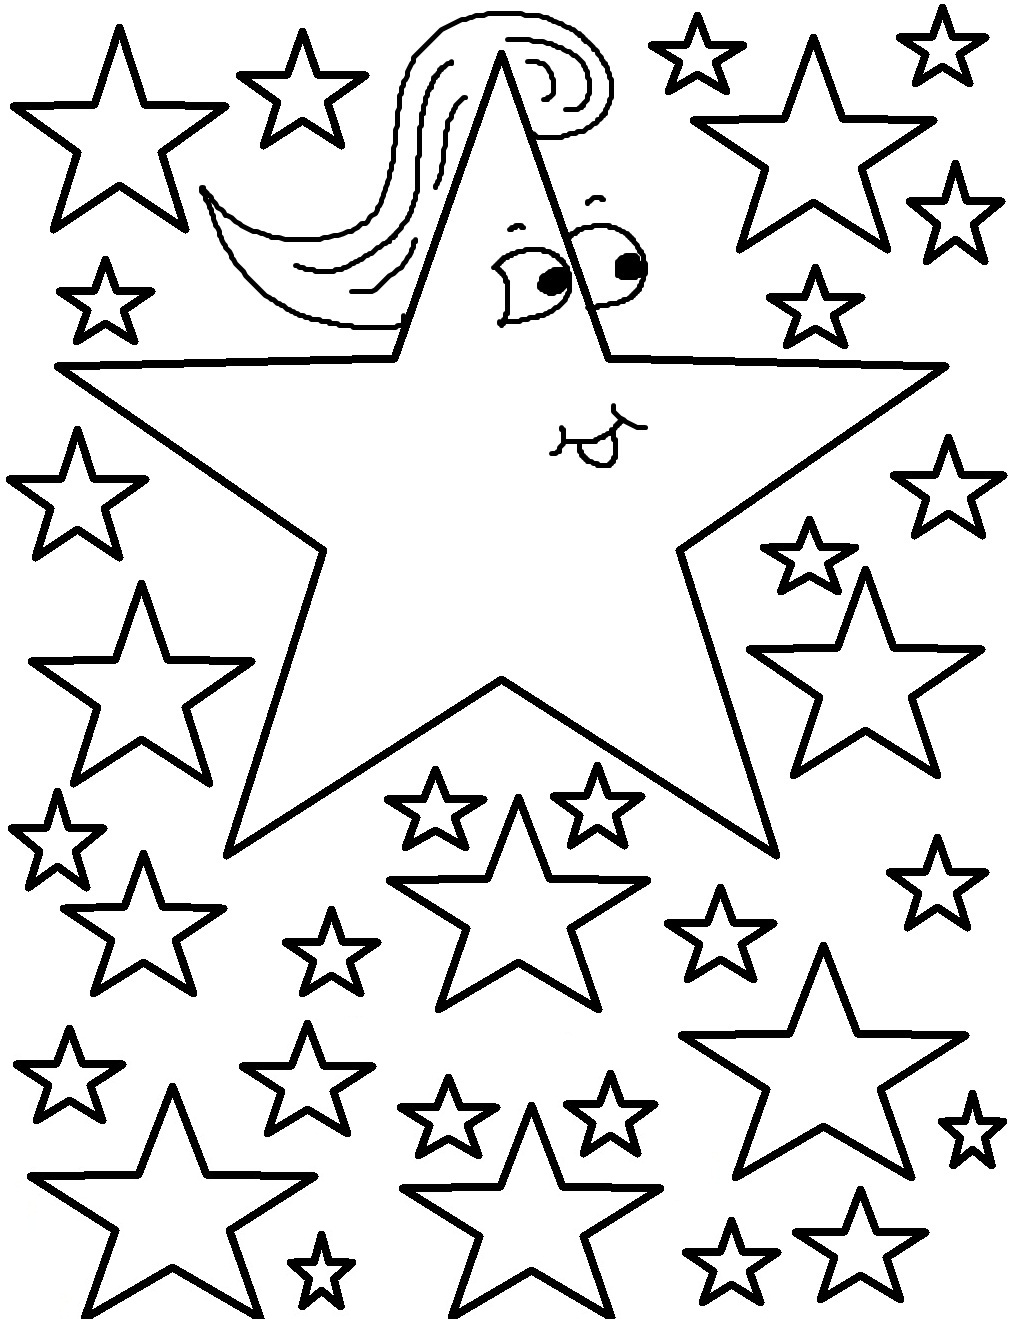 coloring pages for stars - photo#3